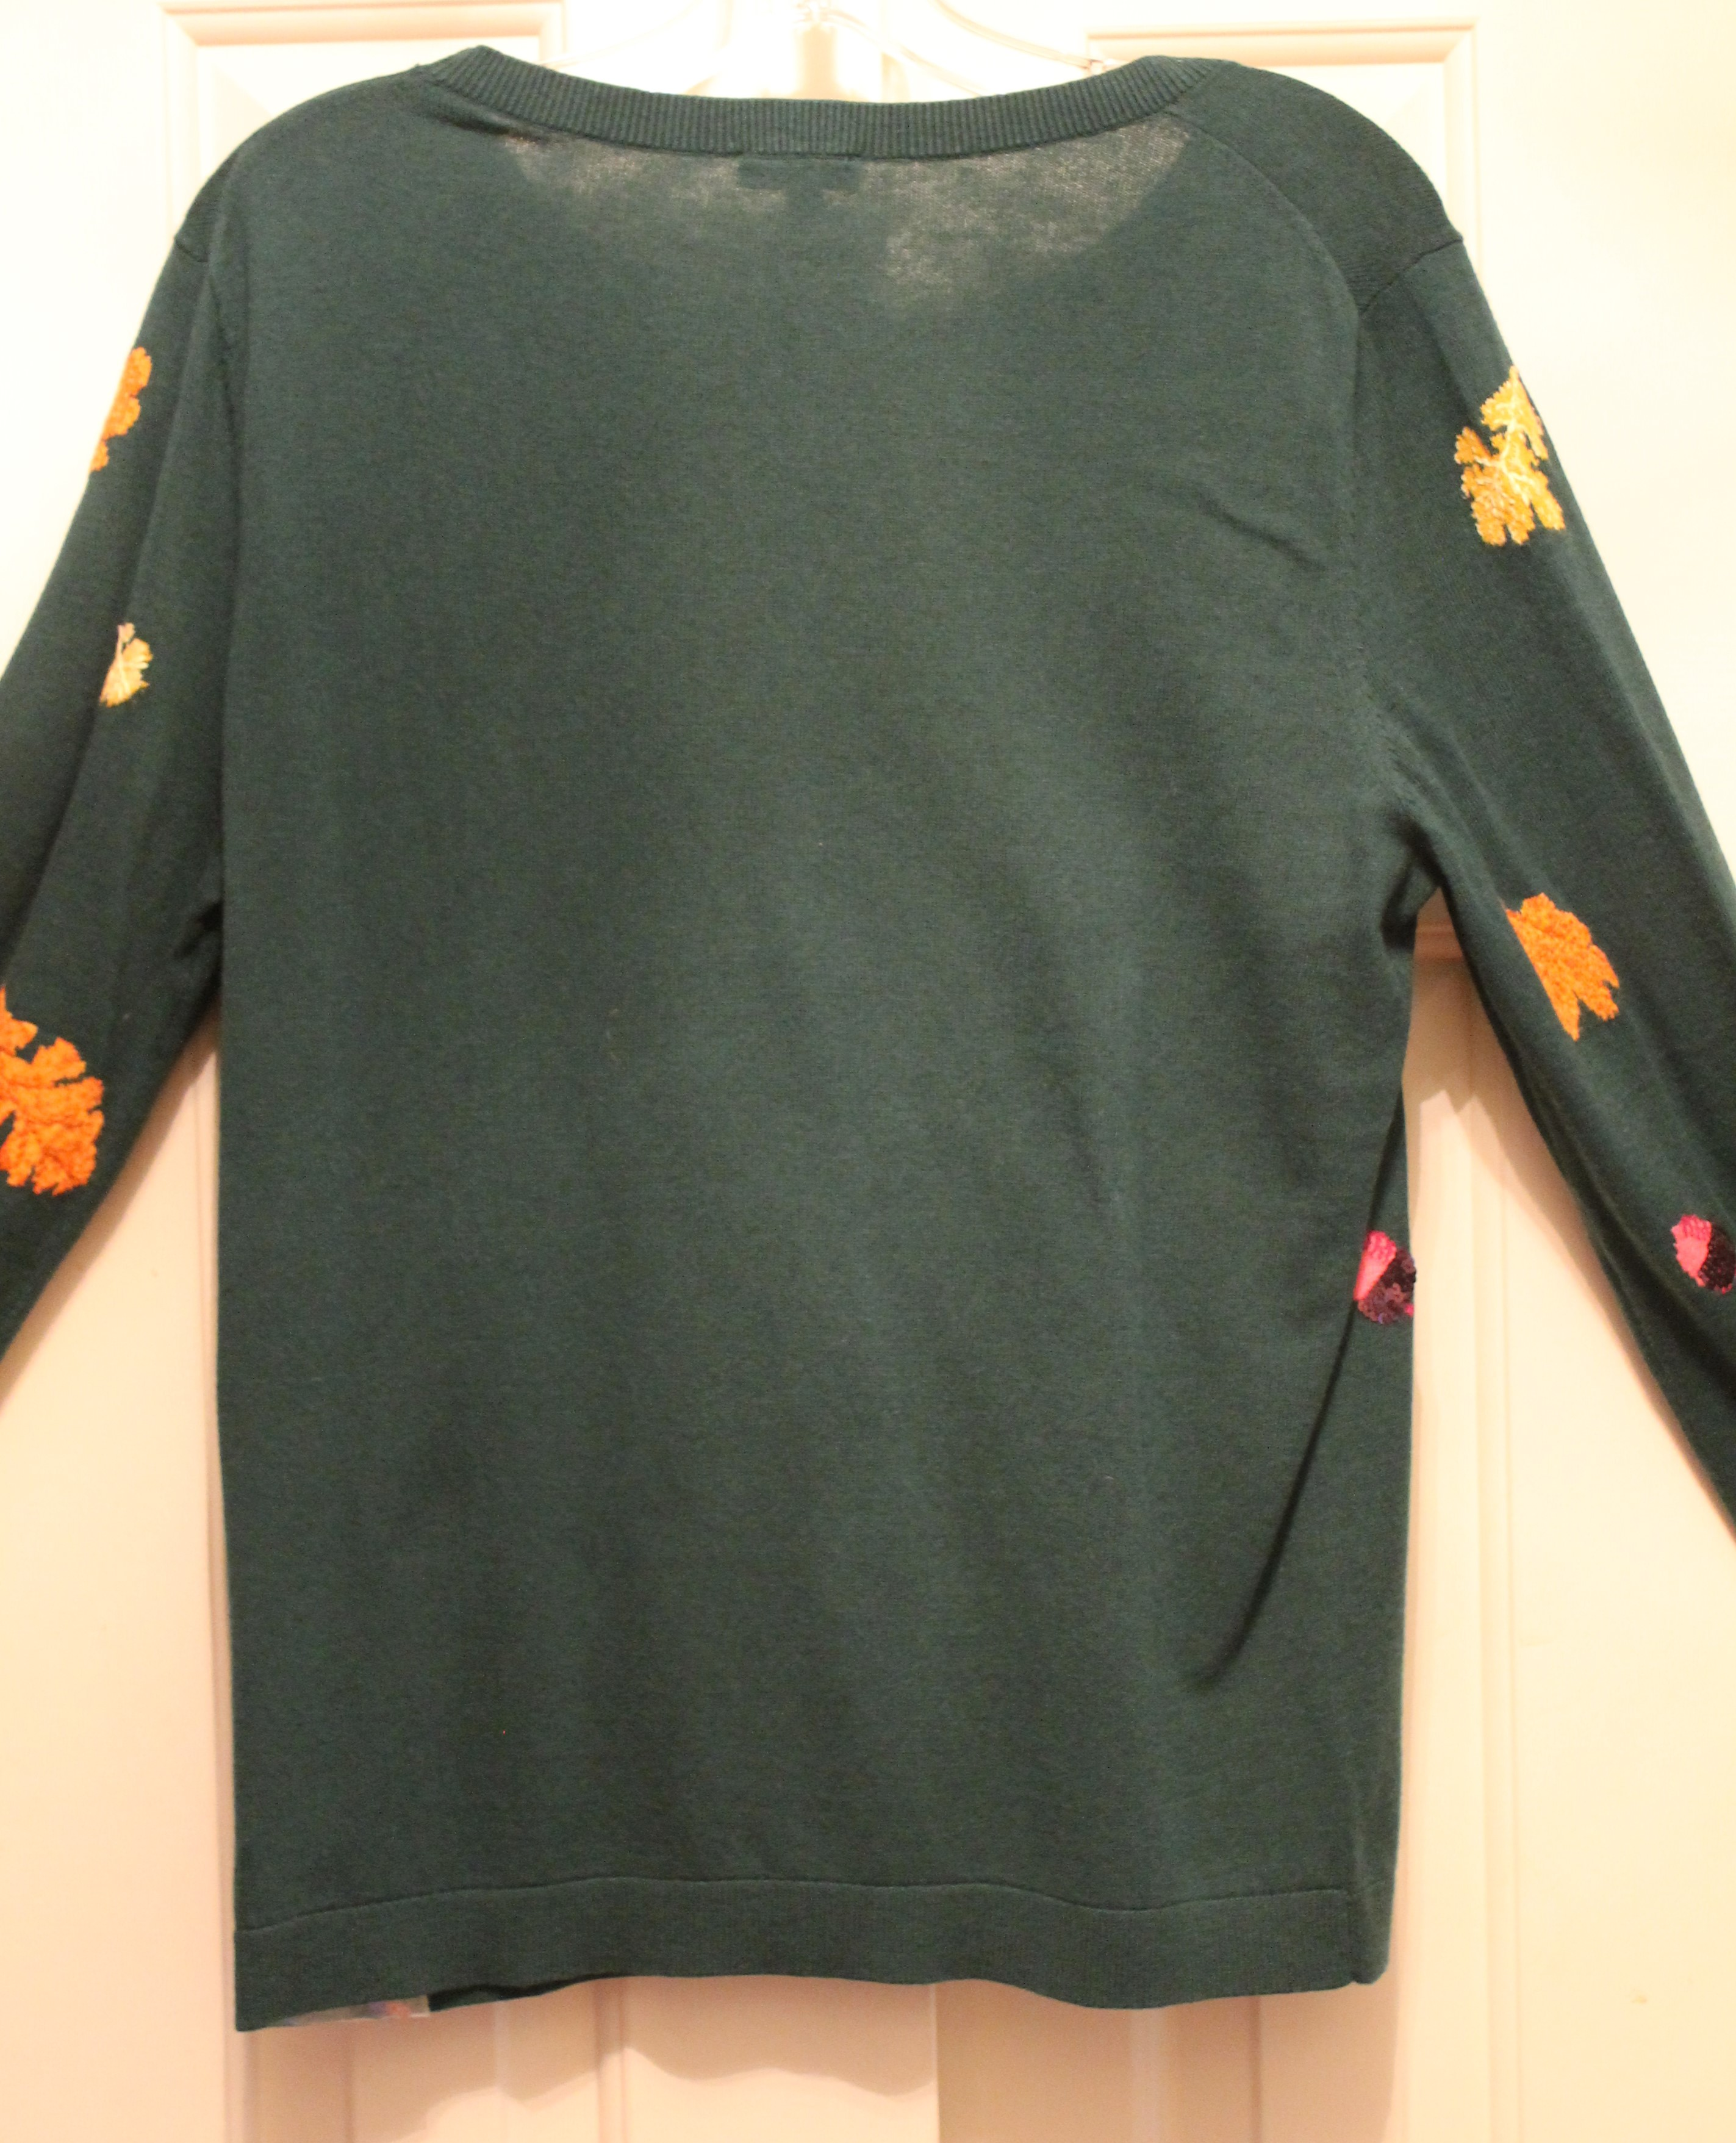 Talbots-Size-M-Green-Cotton-Blend-AUTUMN-Long-Sleeve-Top_64049F.jpg